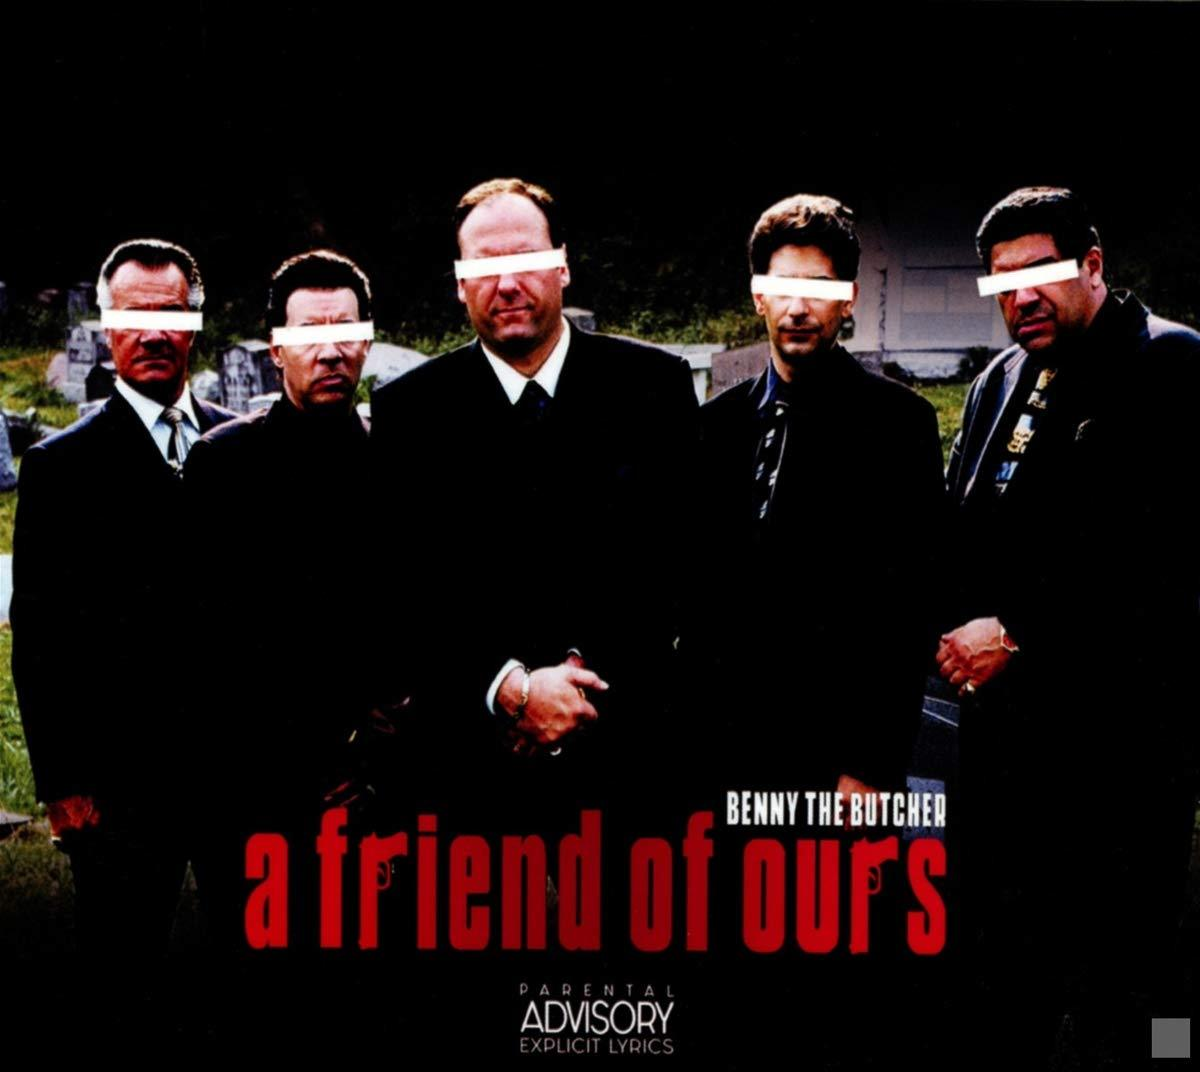 Benny The Butcher - A Friend Of Ours [CD] - Urban Vinyl | Records, Headphones, and more.